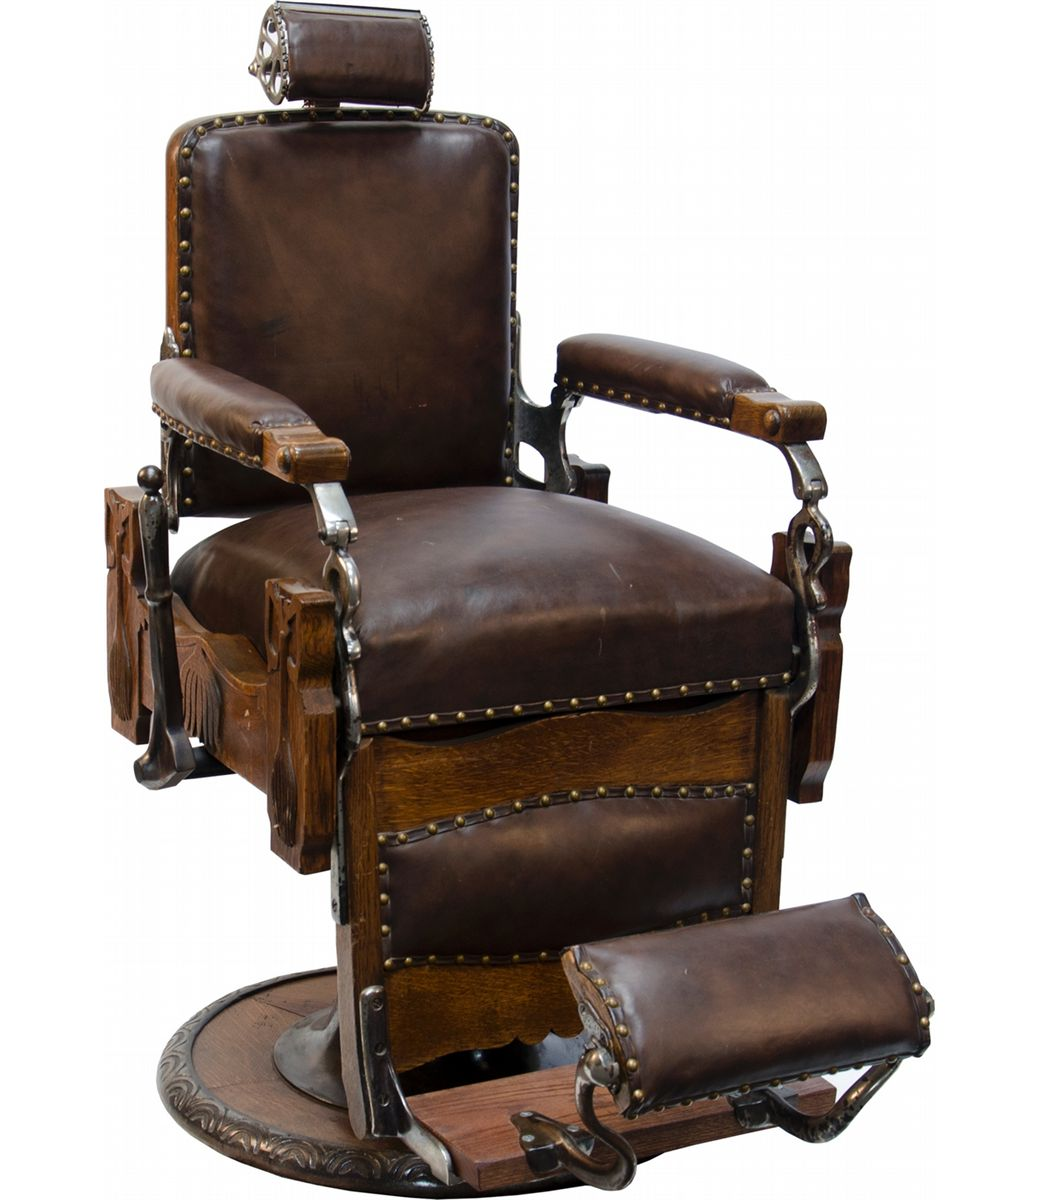 ... antique barber chairs for sale Koken Congress Vintage Pedestal Barber Chair antique barber chairs for sale ...  sc 1 st  Black Headboards For Queen Beds & Antique Barber Chairs For Sale | Black Headboards For Queen Beds